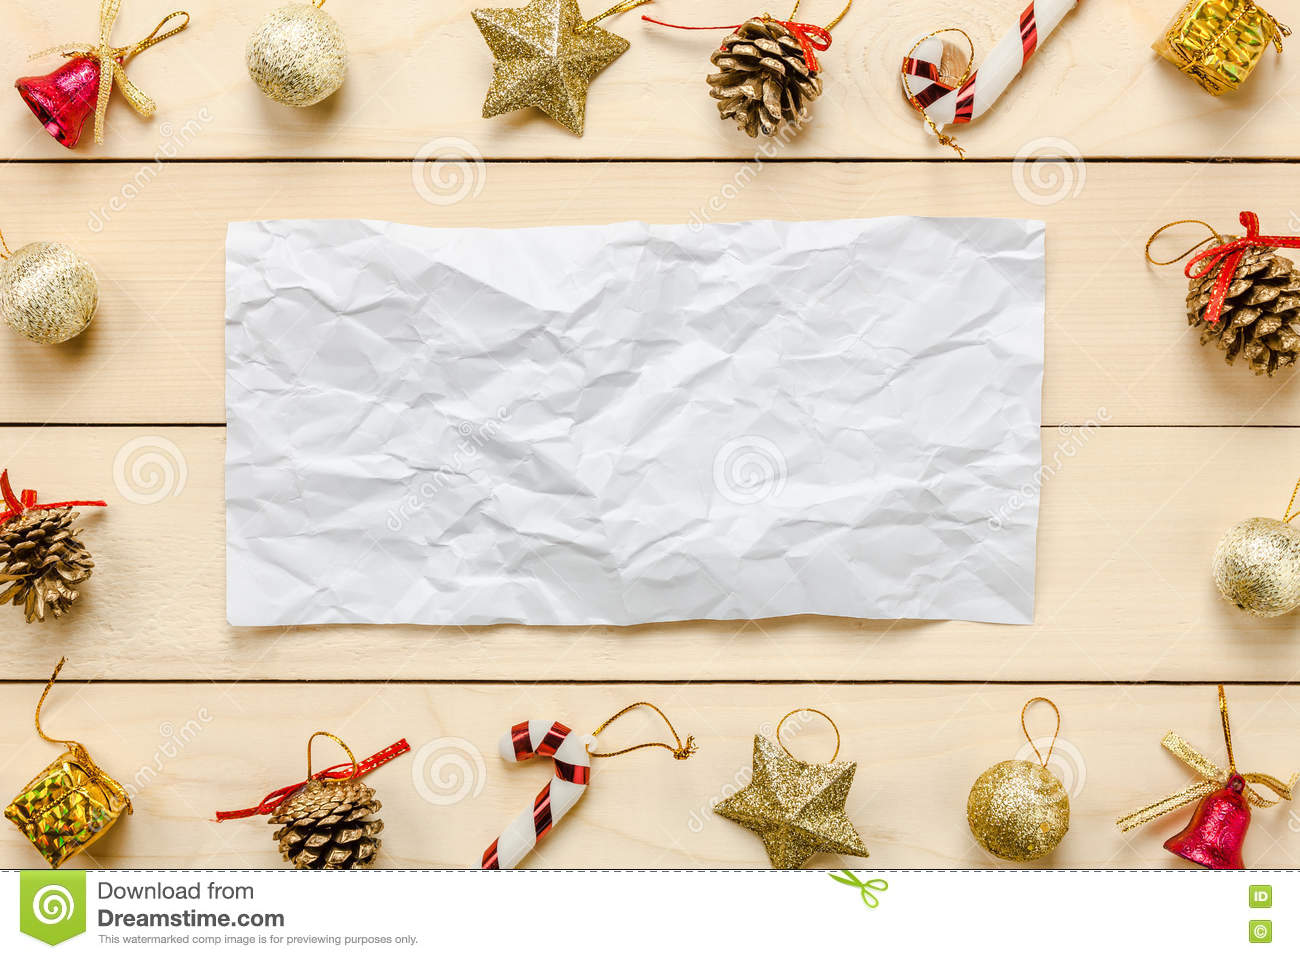 Top view note crumpled paper Chrismas decoration and ornament on